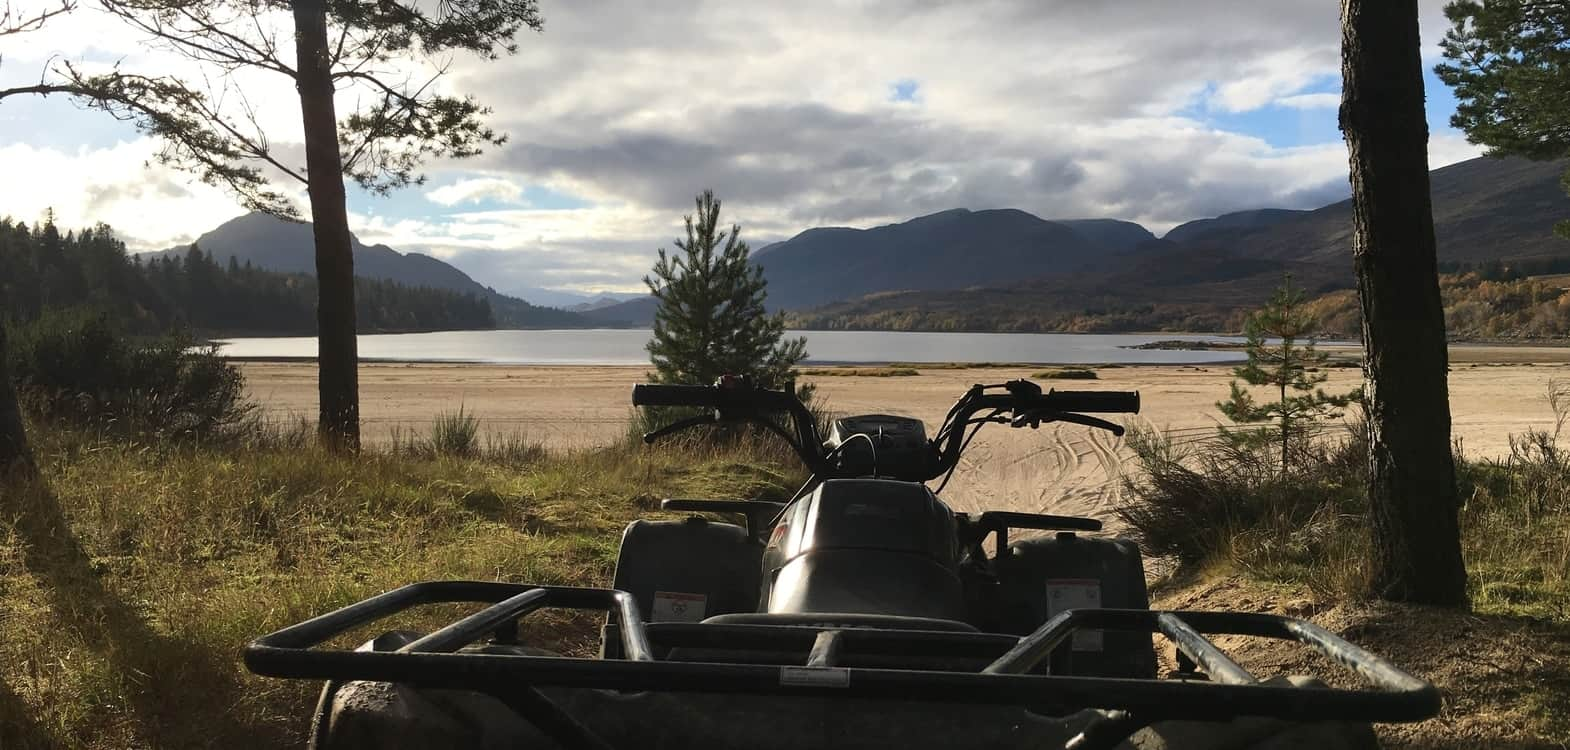 Quad bike overlooking the sandy beach next to a Highland loch, a great day out from Firhall bed and breakfast